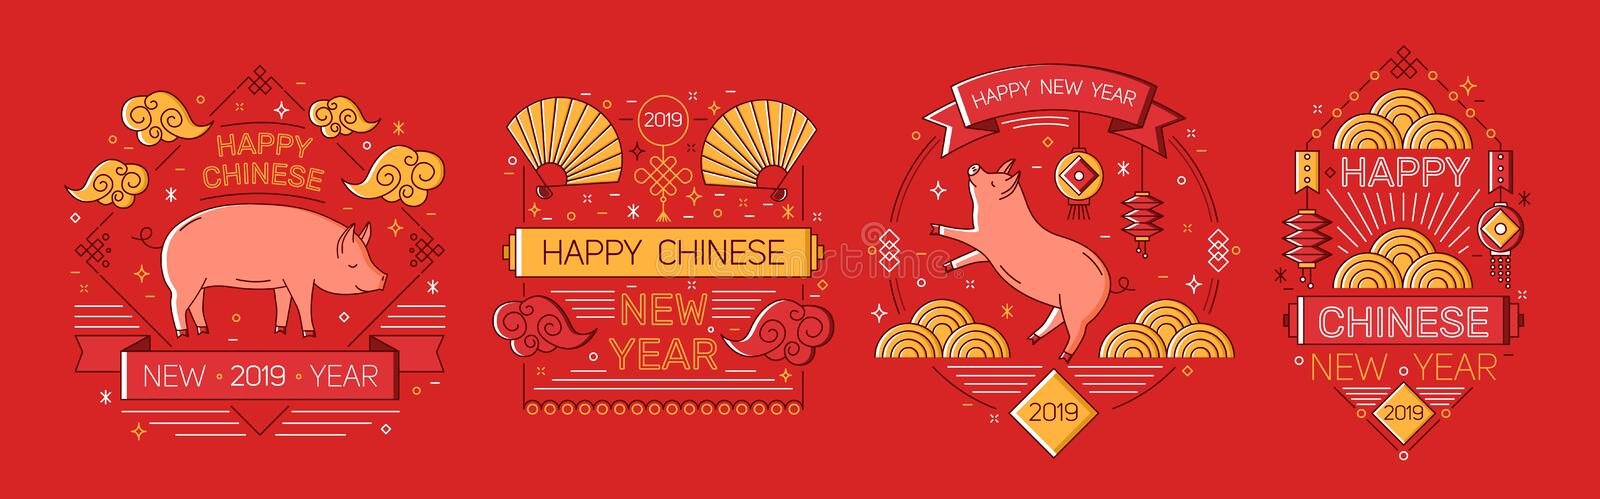 Set of holiday banner templates with Happy Chinese New Year 2019 inscription in red and golden colors decorated with vector illustration